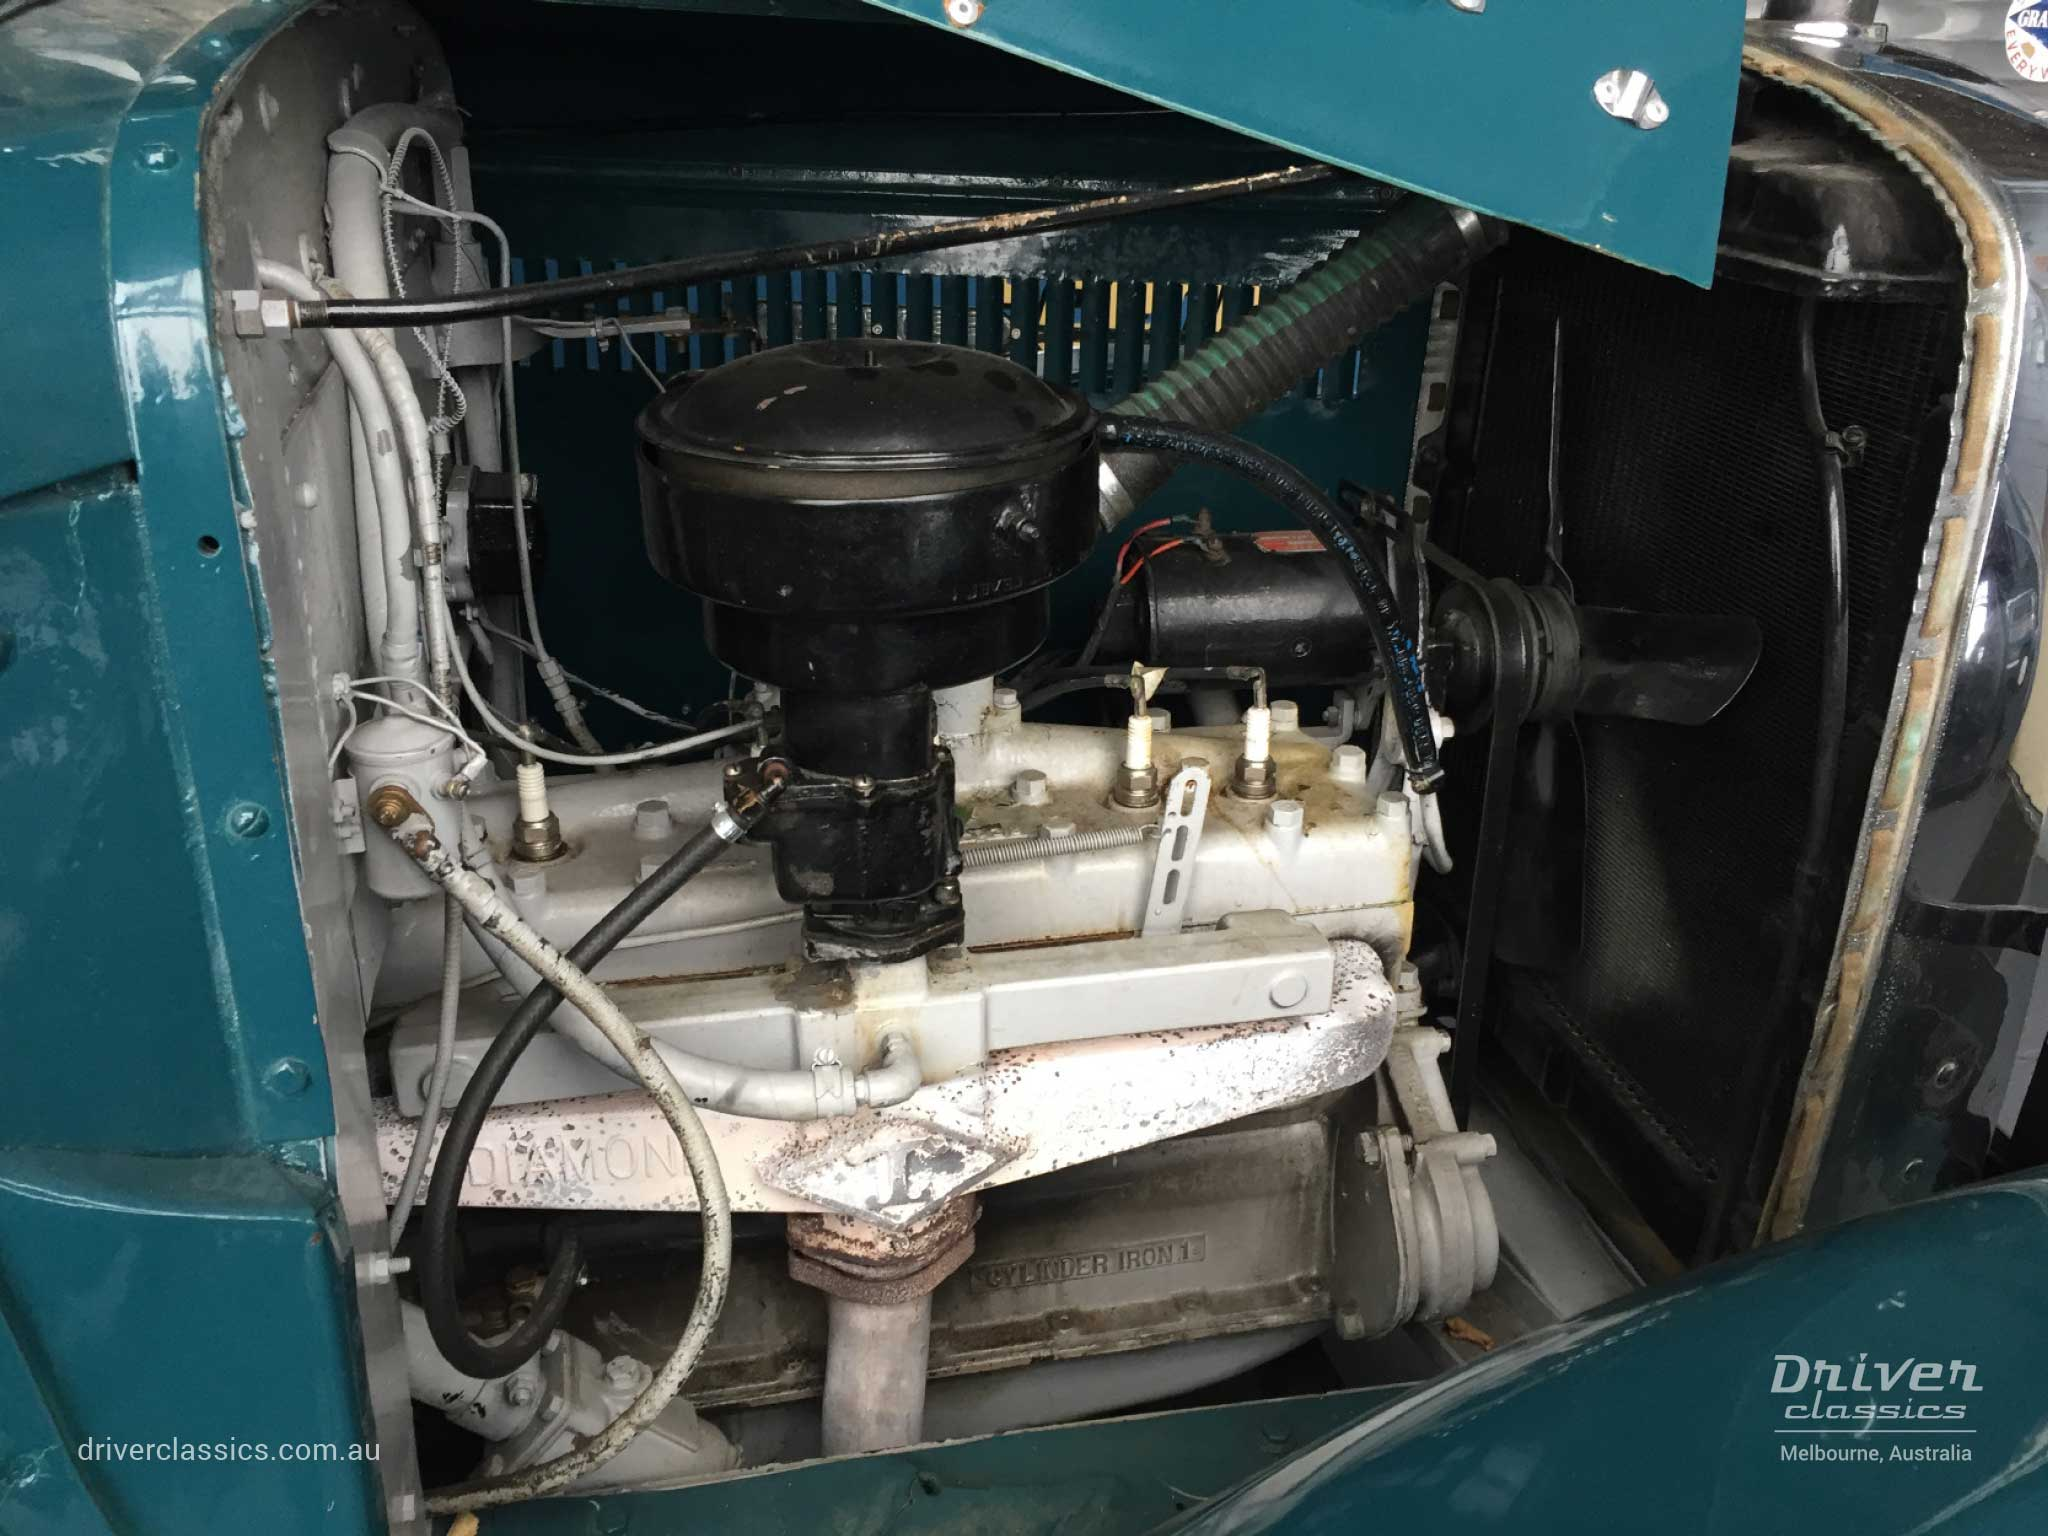 Federal Bus (1936 version), engine bay with Hercules JXA 6 cylinder engine, August 2018